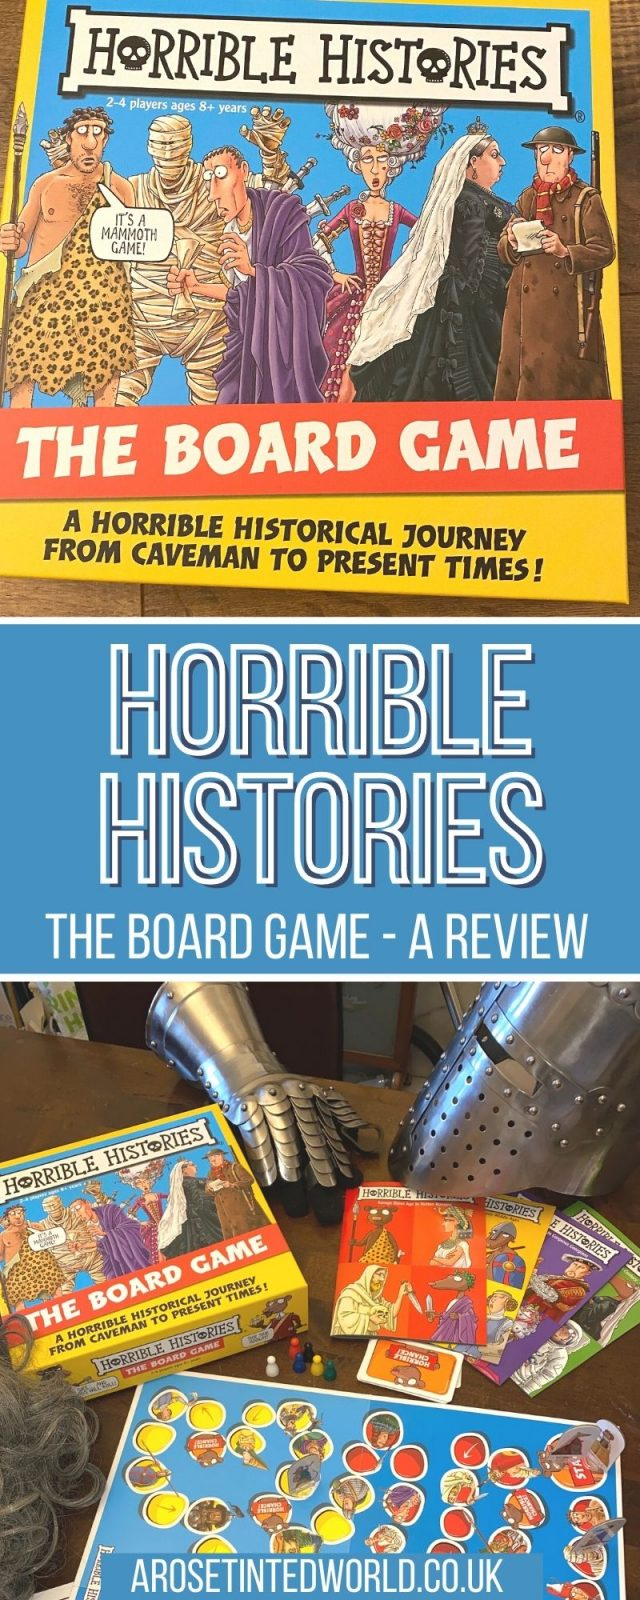 Horrible Histories Board Game Review - we were sent a copy of the Horrible Histories game. See what we thought of this fun yet educational board game based on the award winning Horrible Histories book series and CBBC TV show. Travel through the ages from the Stone Age to the present time, meeting the Rotten Romans, Measly Middle Ages, Terrifying Tudors and Vile Victorians. Avoid Rattus and his tricky chance cards as you play the Horrible Histories game!